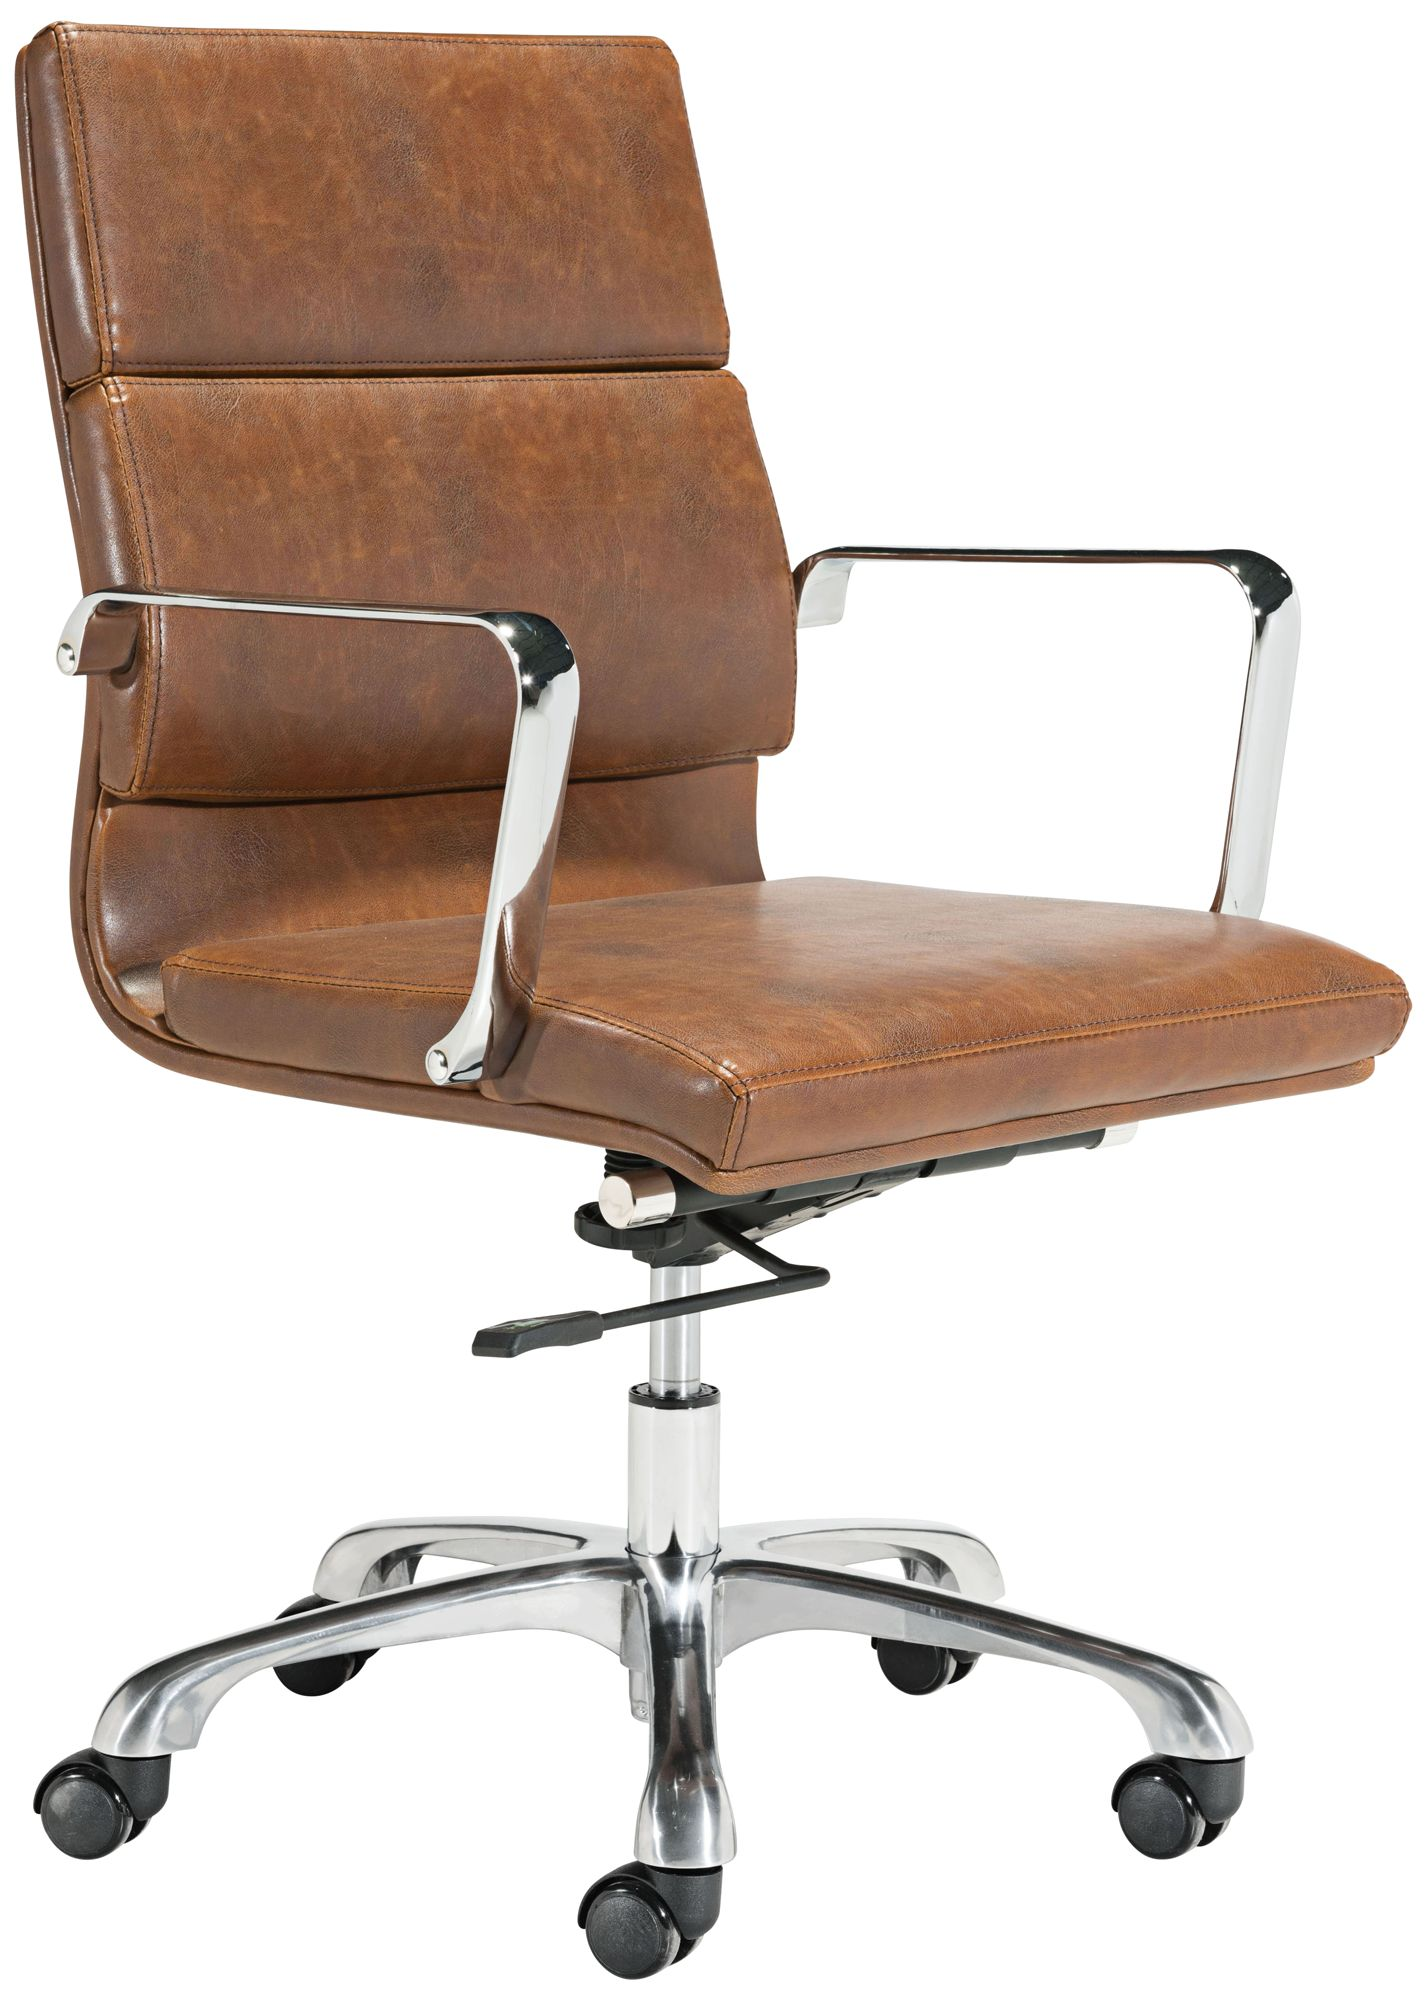 Leather antique wood office chair leather antique Leather Swivel Ithaca Vintage Brown Faux Leather Adjustable Office Chair 53x30 Lamps Plus Ithaca Vintage Brown Faux Leather Adjustable Office Chair 53x30